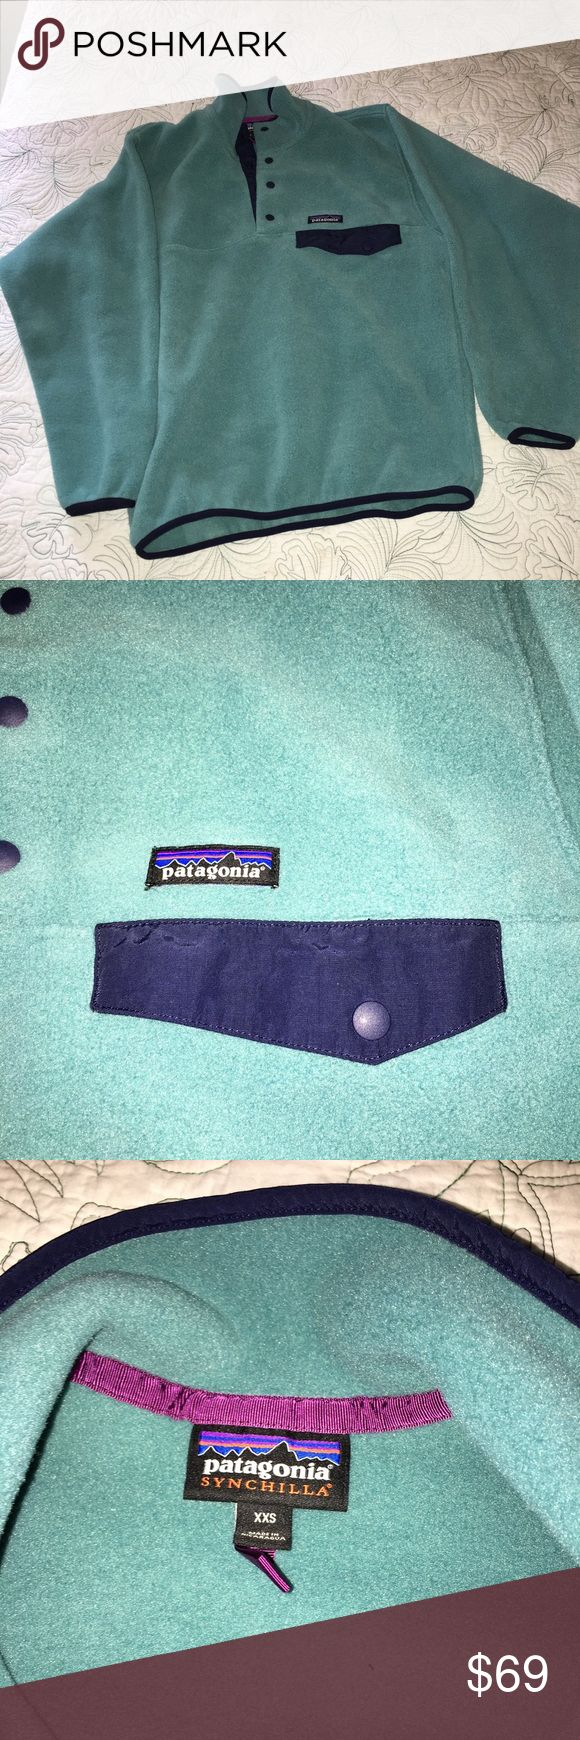 Men's Patagonia XXS synchilla snap t pullover Men's Patagonia XXS synchilla snap t pullover in soft sea green. Fits like a women's XS. Worn only once. Also washed once. No rips, stains or odors. Navy accents/piping. Comes from a smoke-free, pet-free home. Patagonia Tops